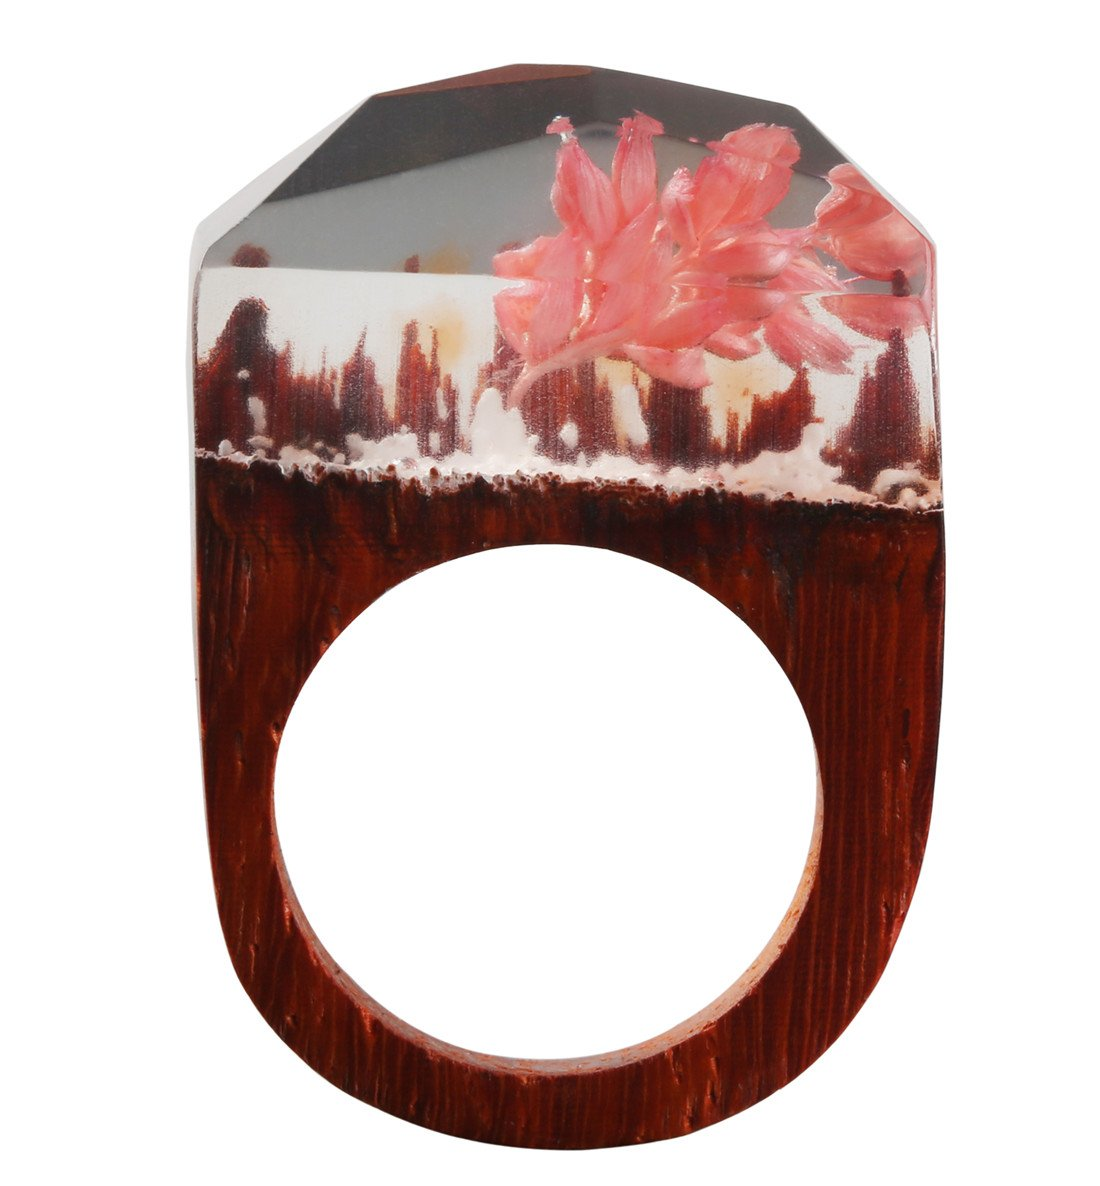 Heyou Love Handmade Wood Resin Rings Secret Pink Rose Flowers Inside Worlds Ring Jewelry for Women (Pink lavender, 9)